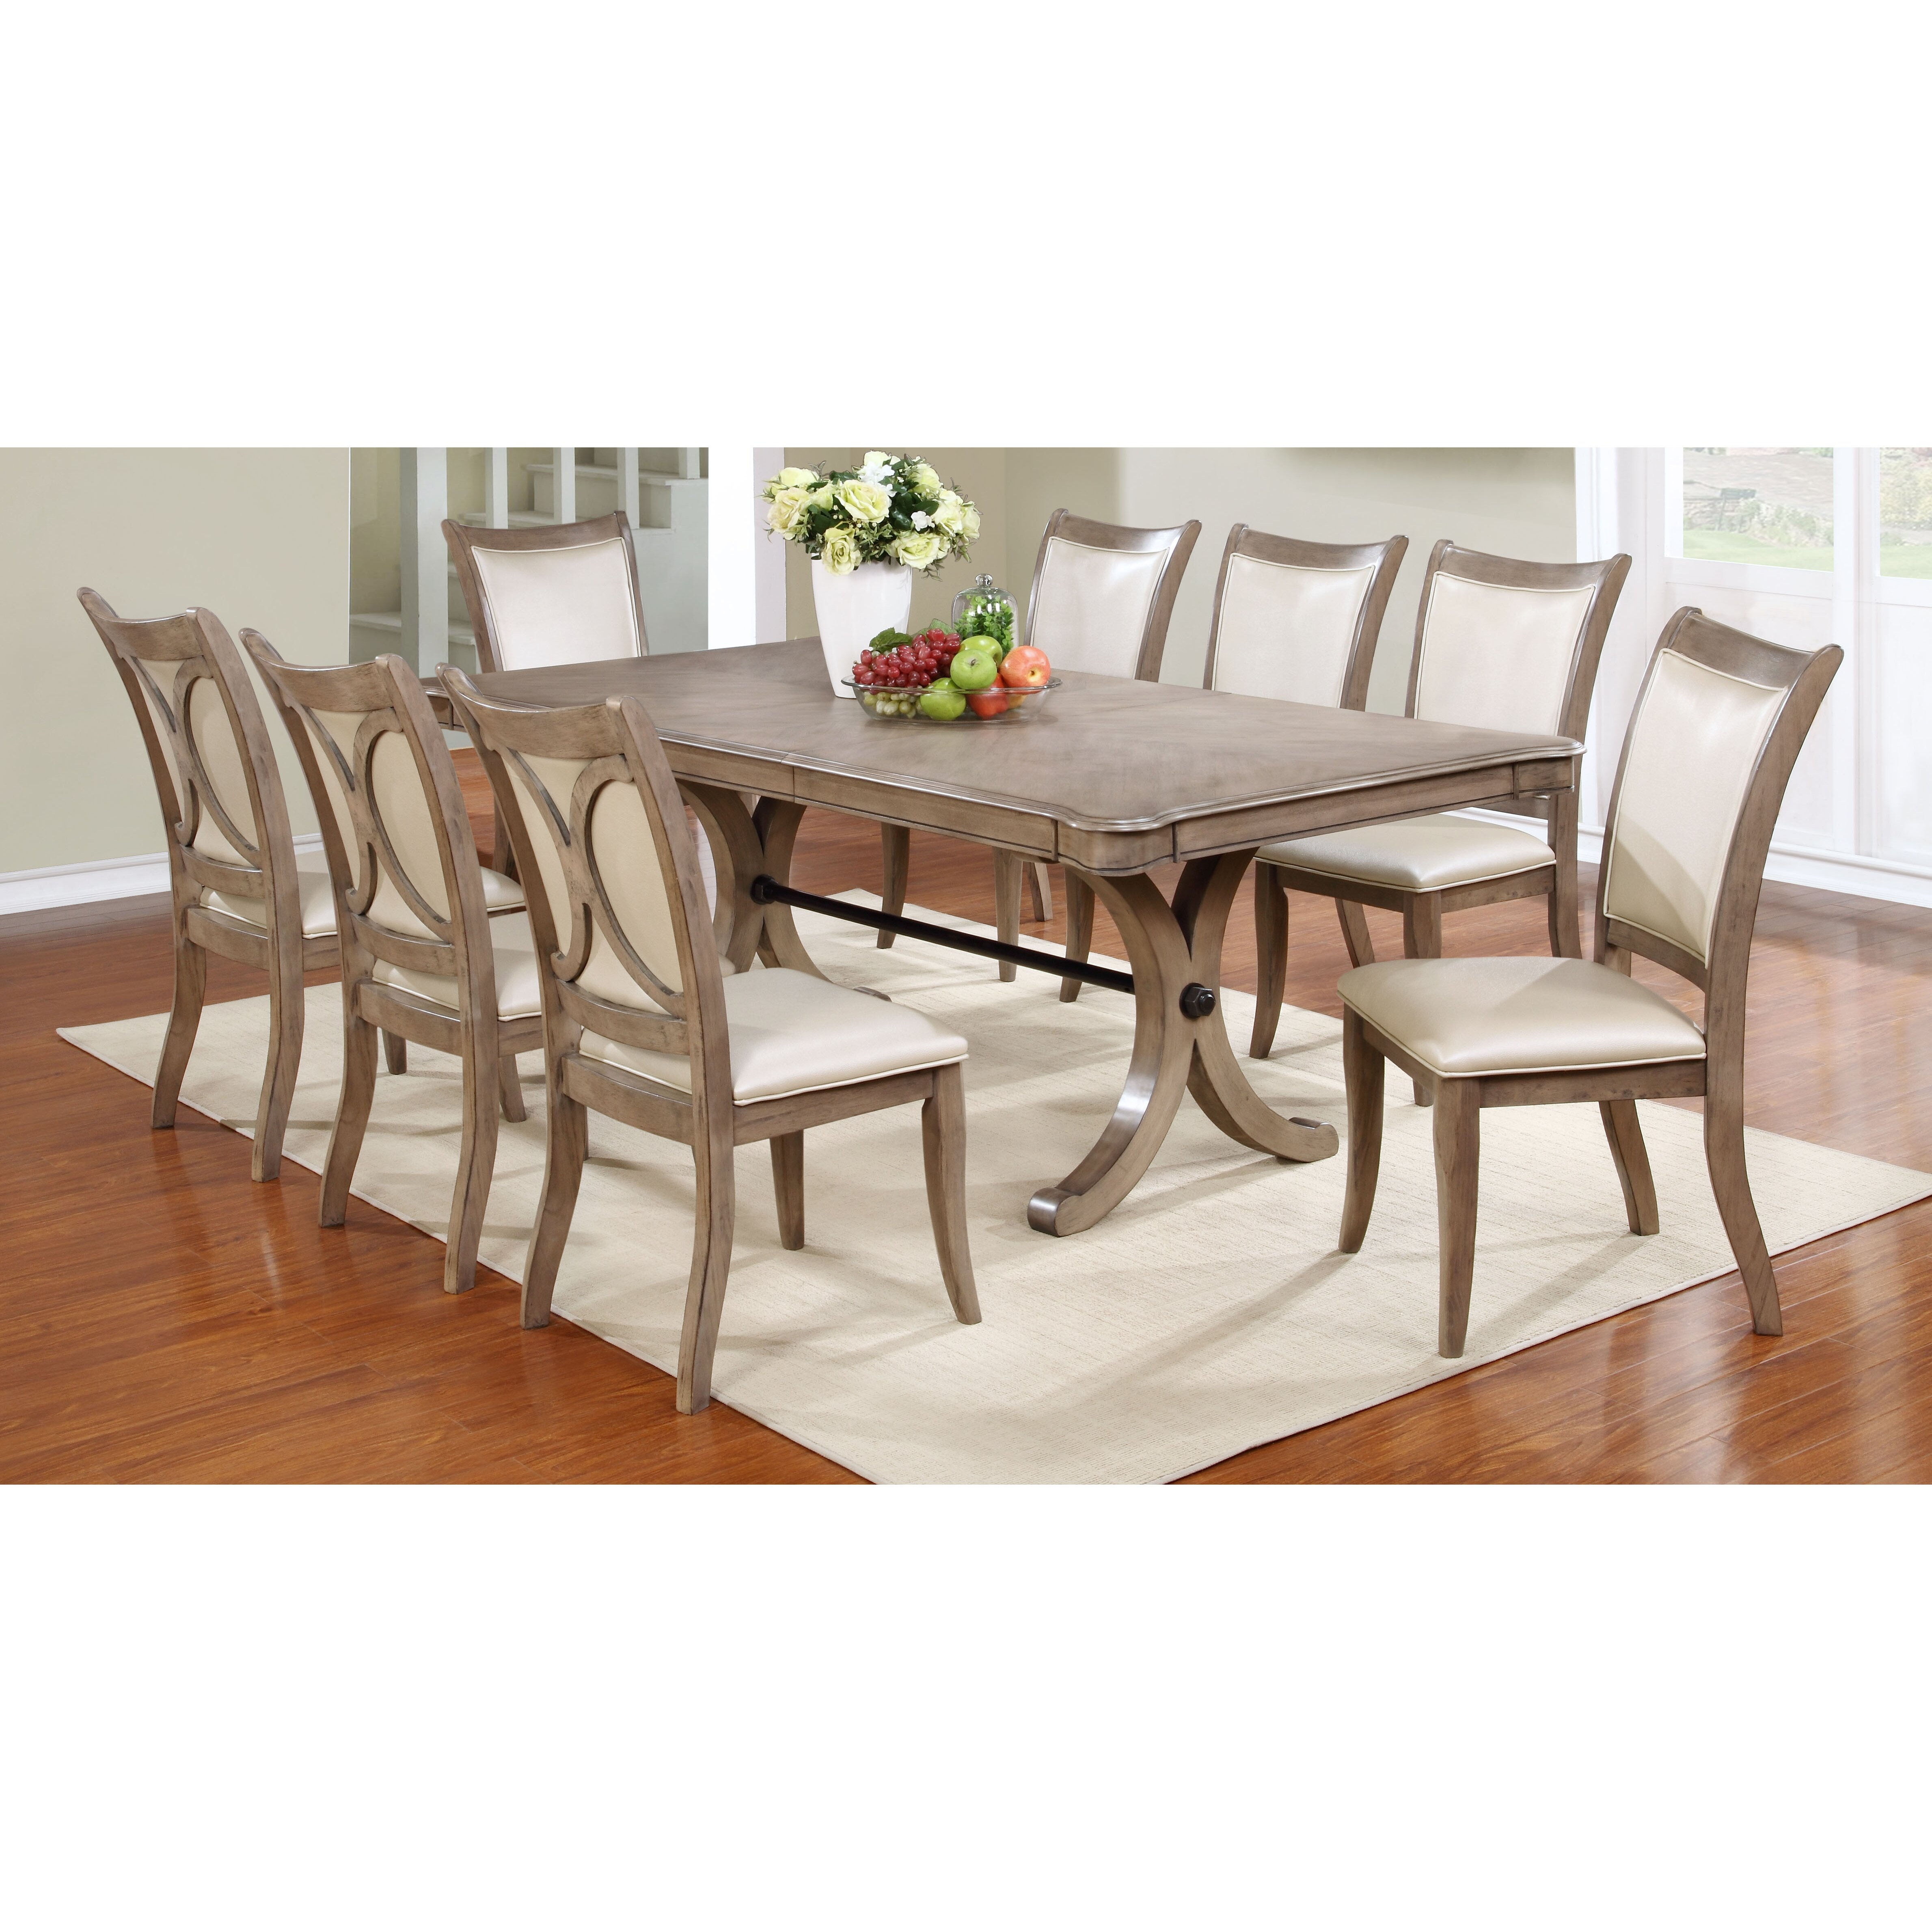 Rosalind wheeler regina piece dining set wayfair